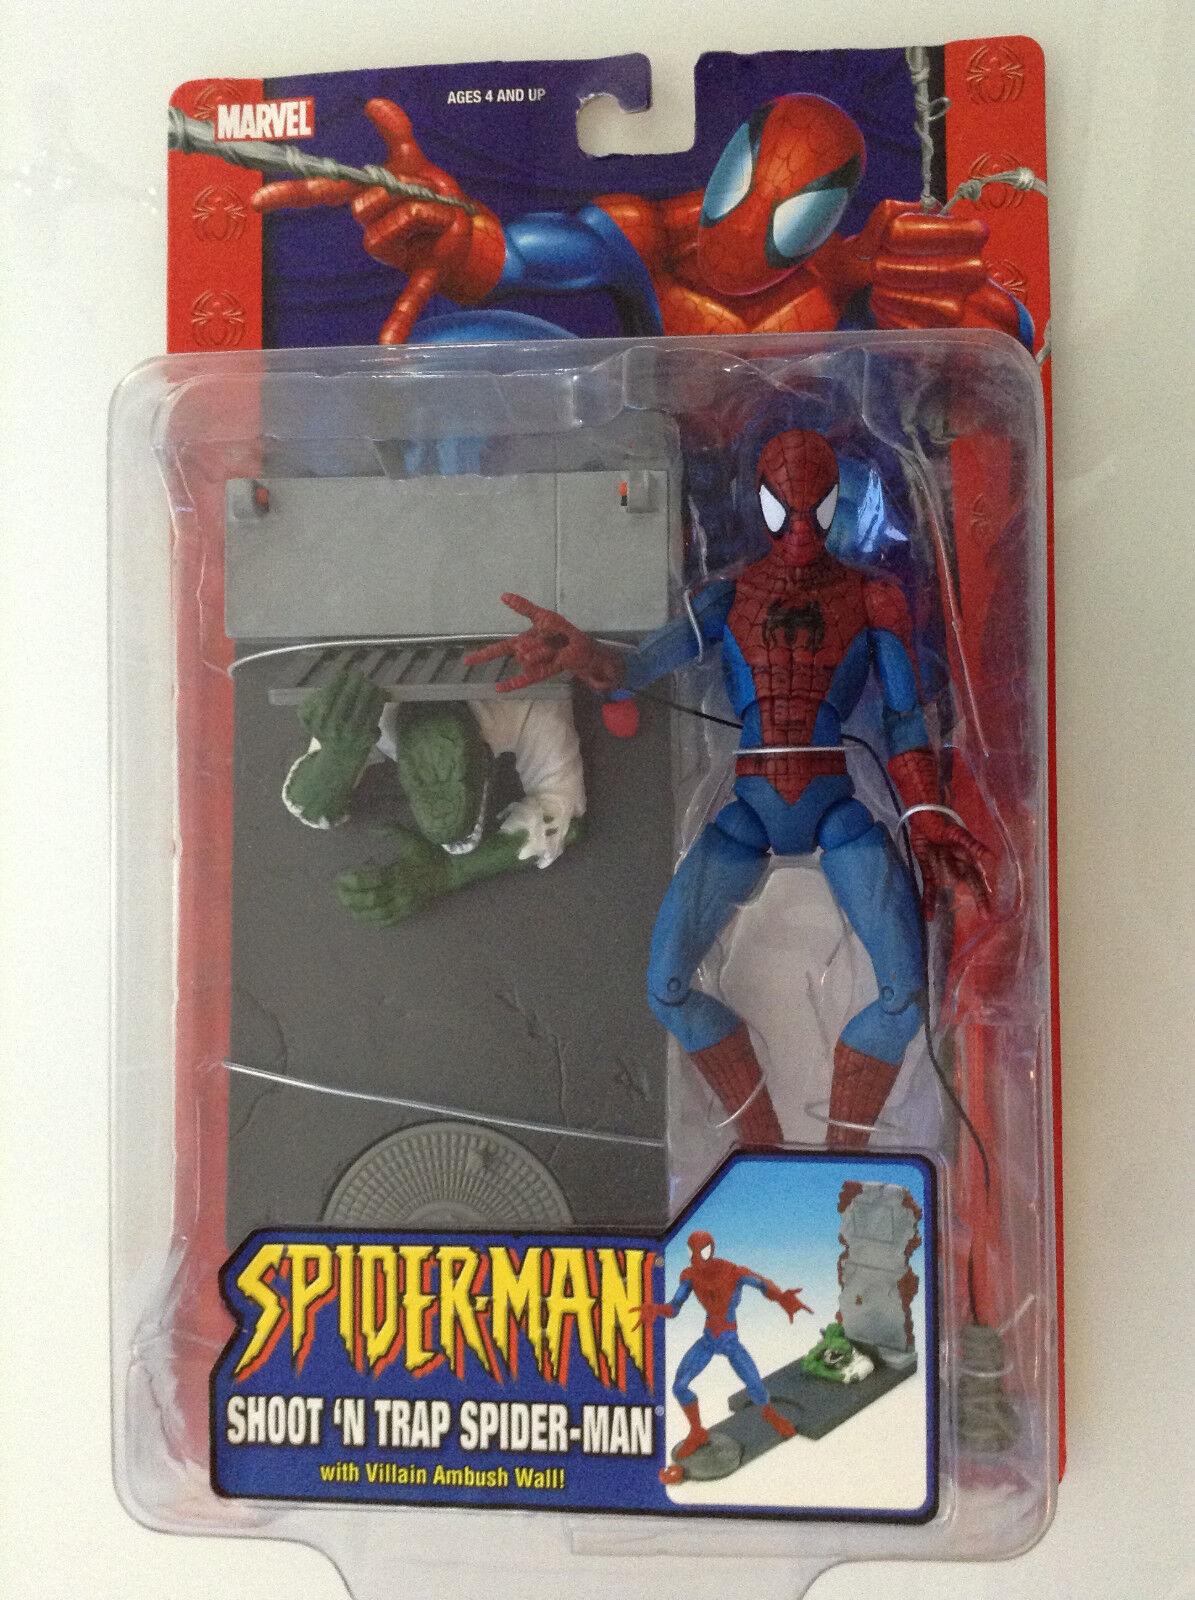 SPIDER-MAN SHOOT 'N TRAP ACTION FIGURE 6  CLASSIC 2005 MARVEL NEW(NOW AMAZING134